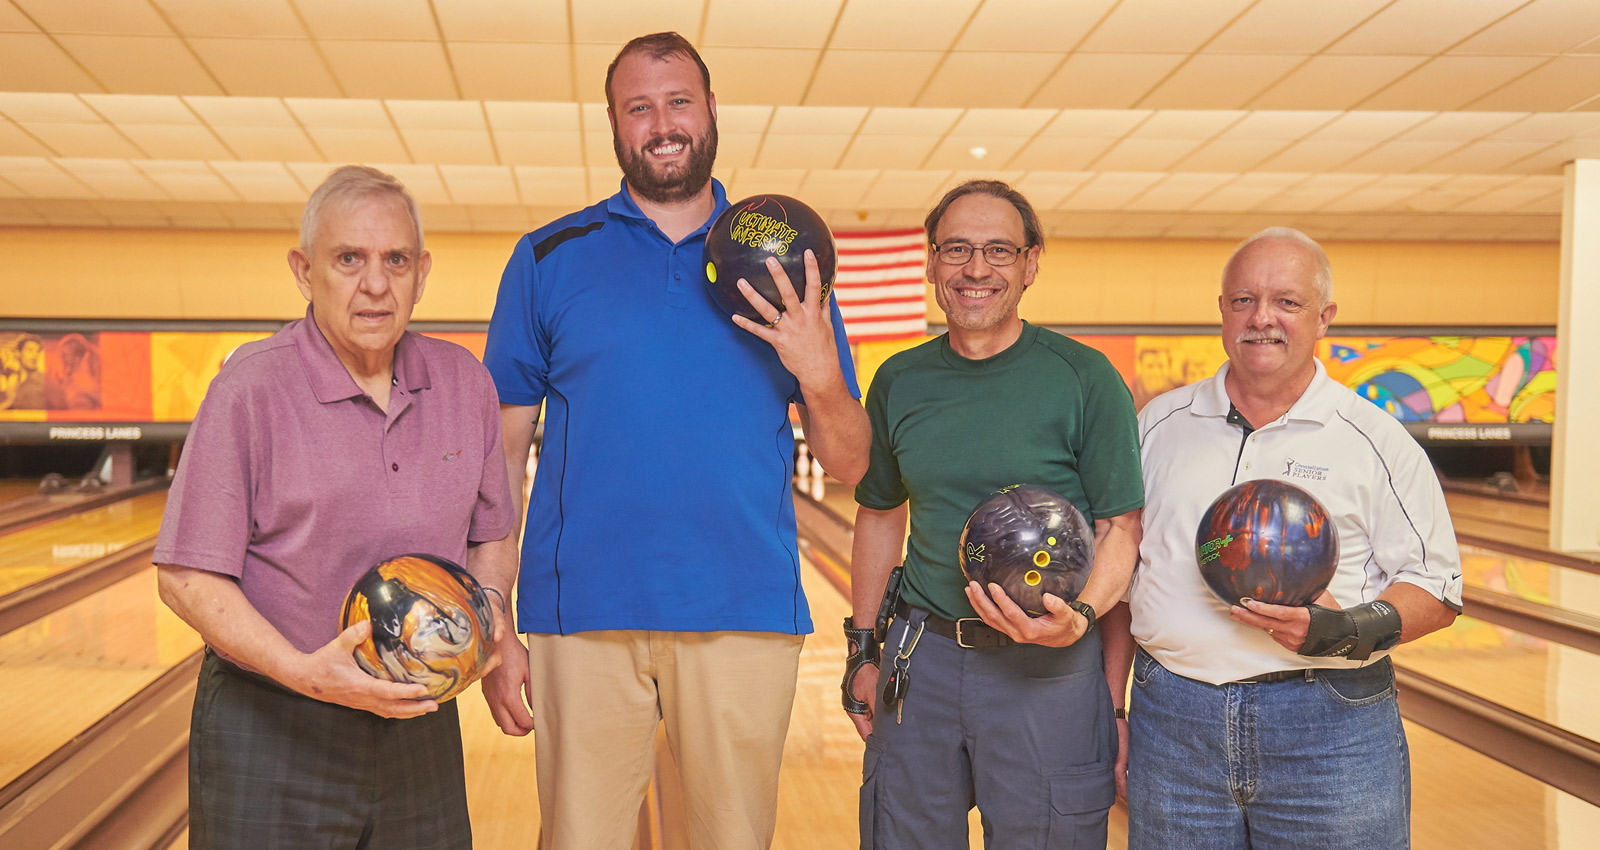 Start a bowling fundraiser at Princess Lanes in Caste Village